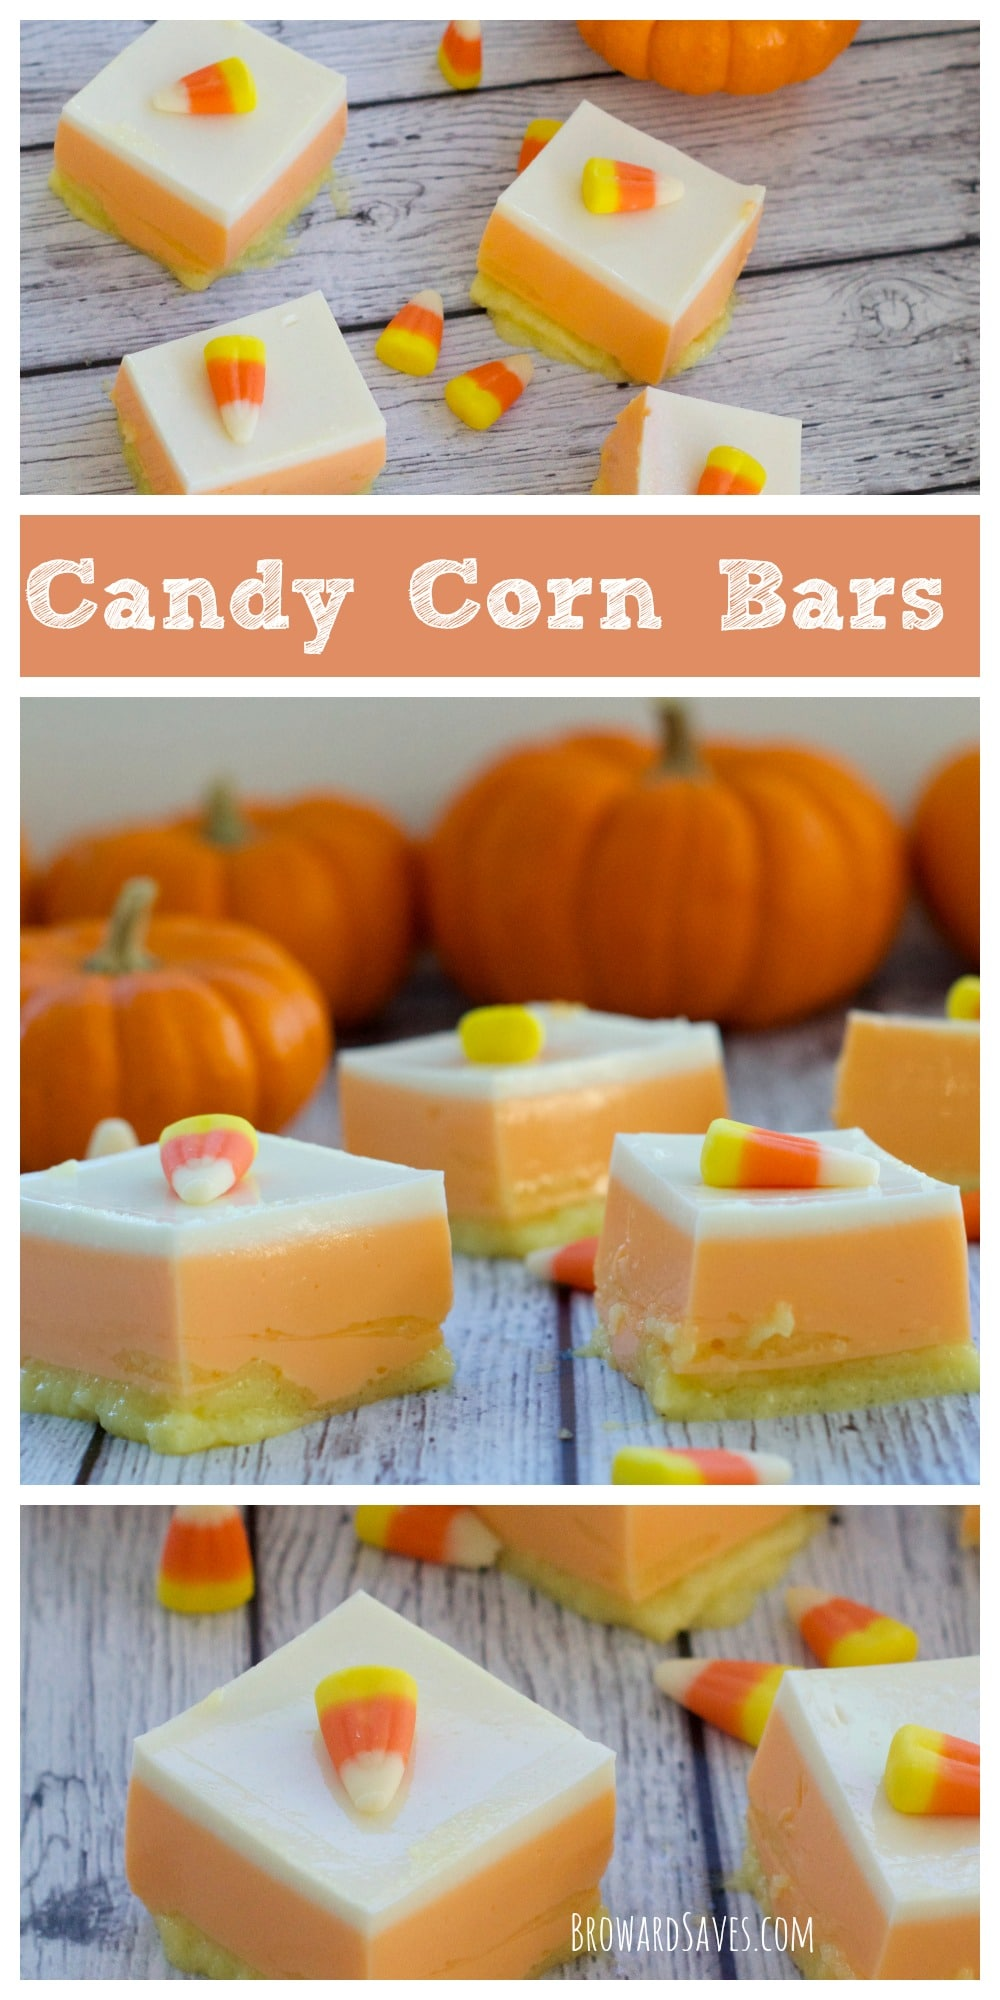 These healthy Candy Corn Bars are made with Yogurt and Jell-O. Both fat and sugar-free. They are delicious, easy to make and kids love it.